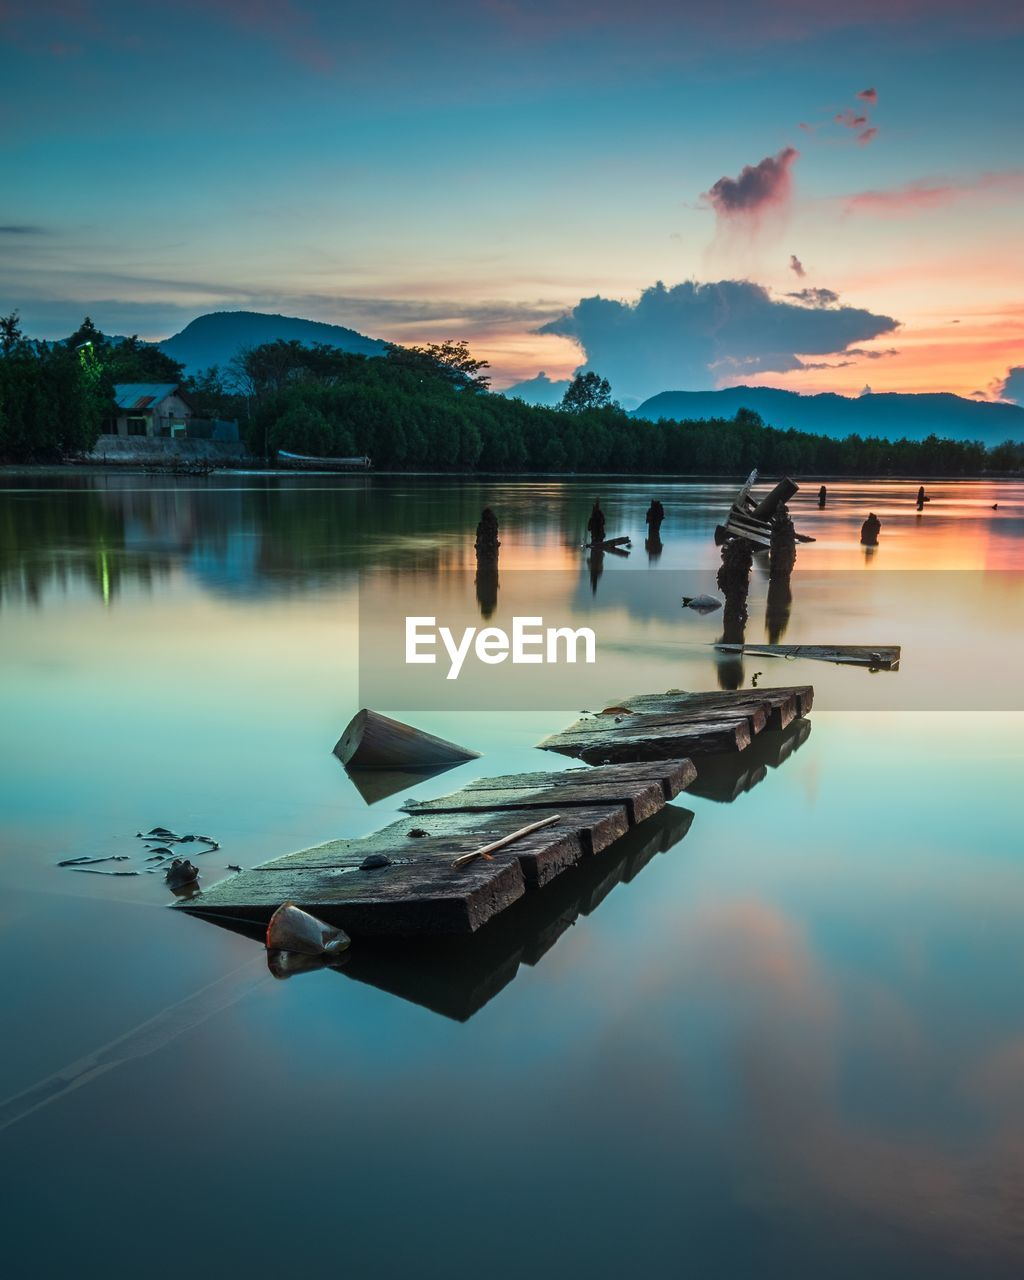 water, reflection, sky, lake, cloud - sky, nature, tranquility, sunset, scenics - nature, tranquil scene, waterfront, nautical vessel, beauty in nature, transportation, no people, mode of transportation, idyllic, outdoors, standing water, floating on water, swimming pool